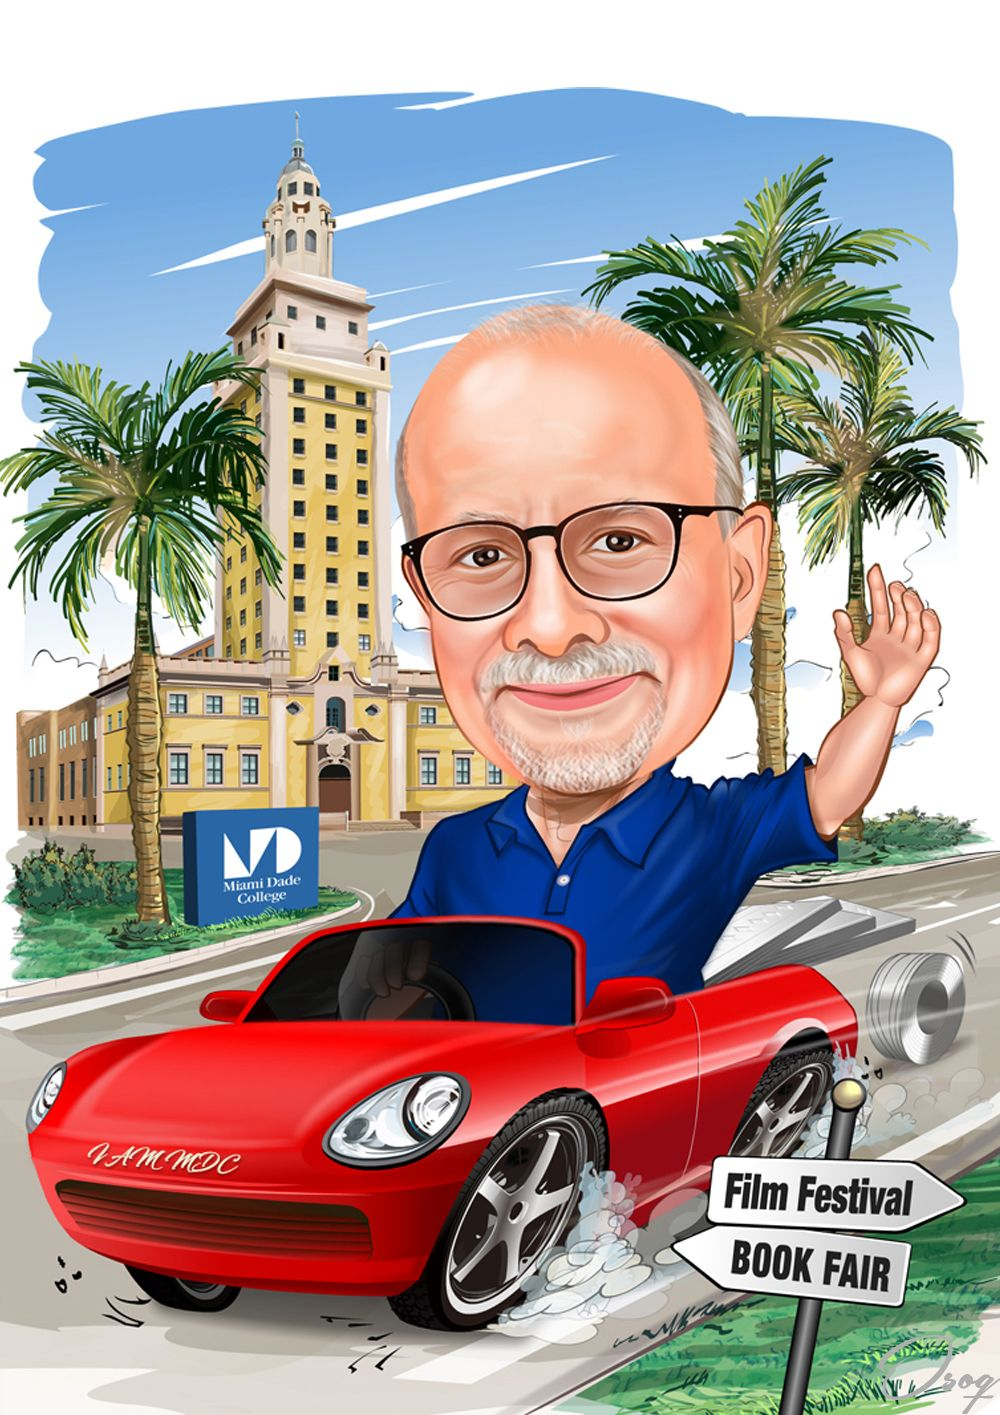 Our College President Dr Pa Is Driving His Red Sports Car The Background Is The Mdc Freedom Tower Which Teacher Cartoon School Cartoon Graduation Cartoon